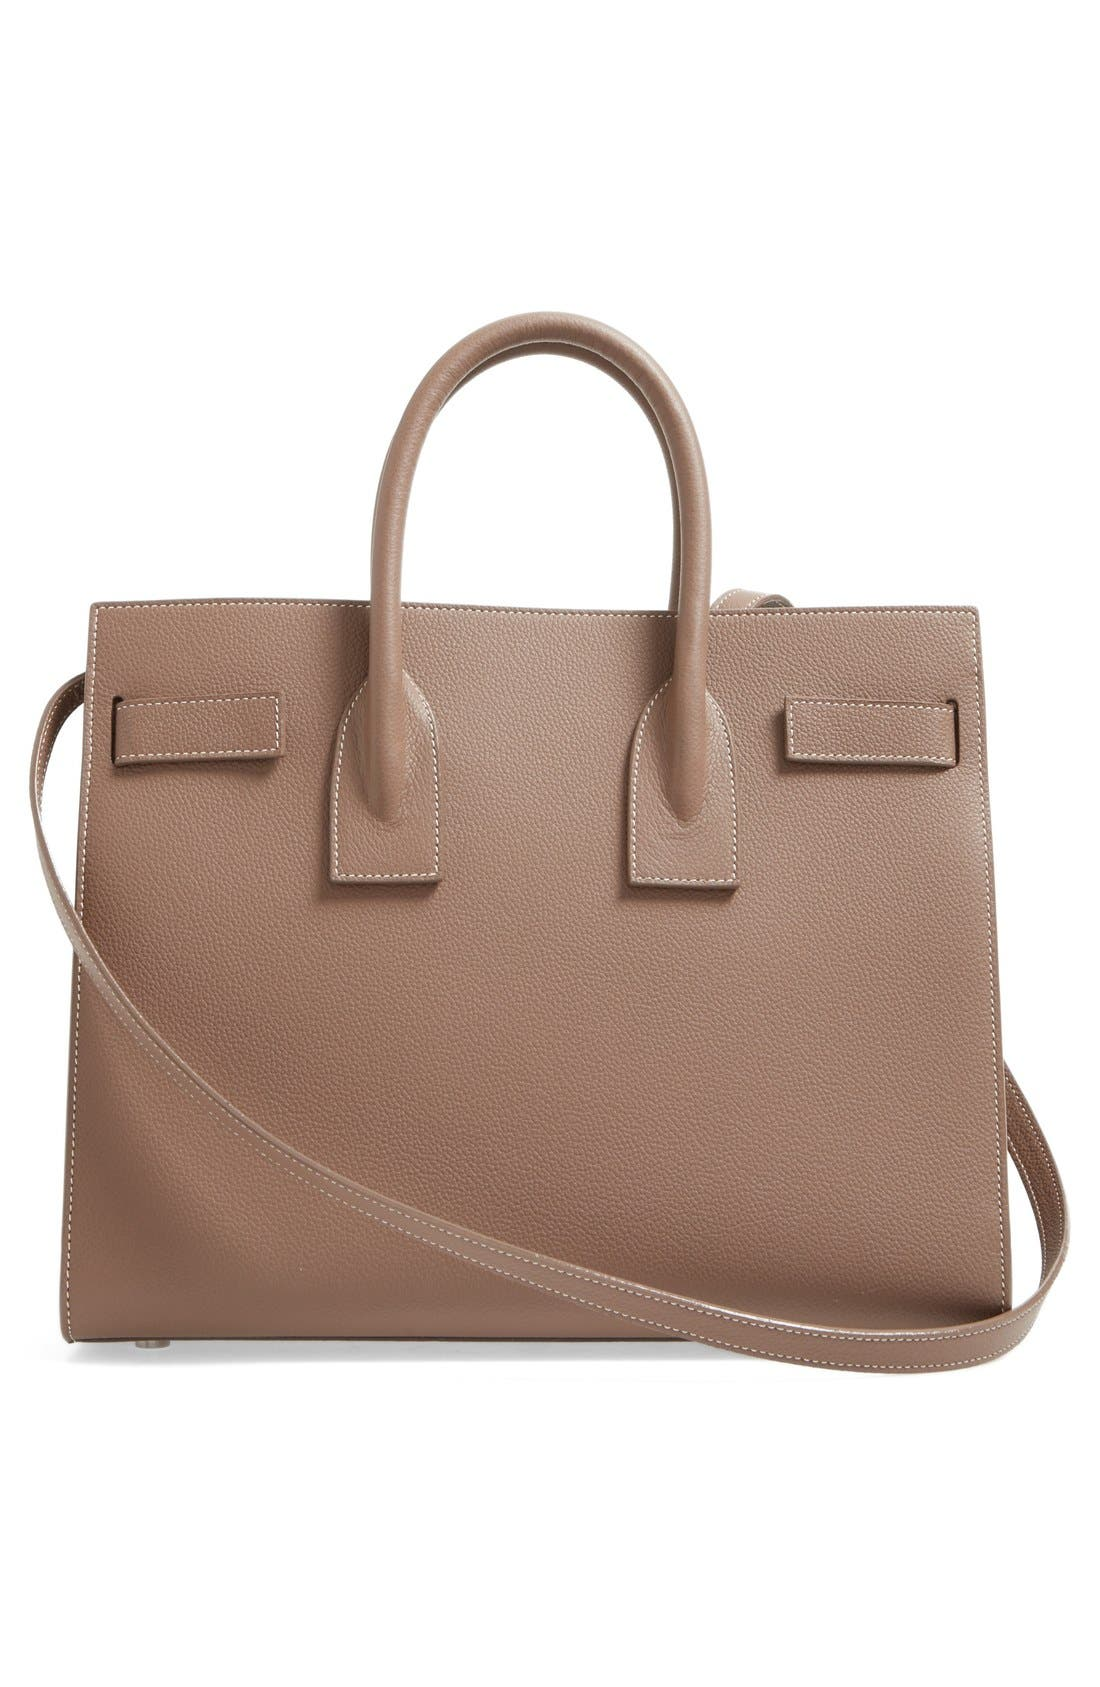 Small Sac de Jour Calfskin Leather Tote,                             Alternate thumbnail 6, color,                             250